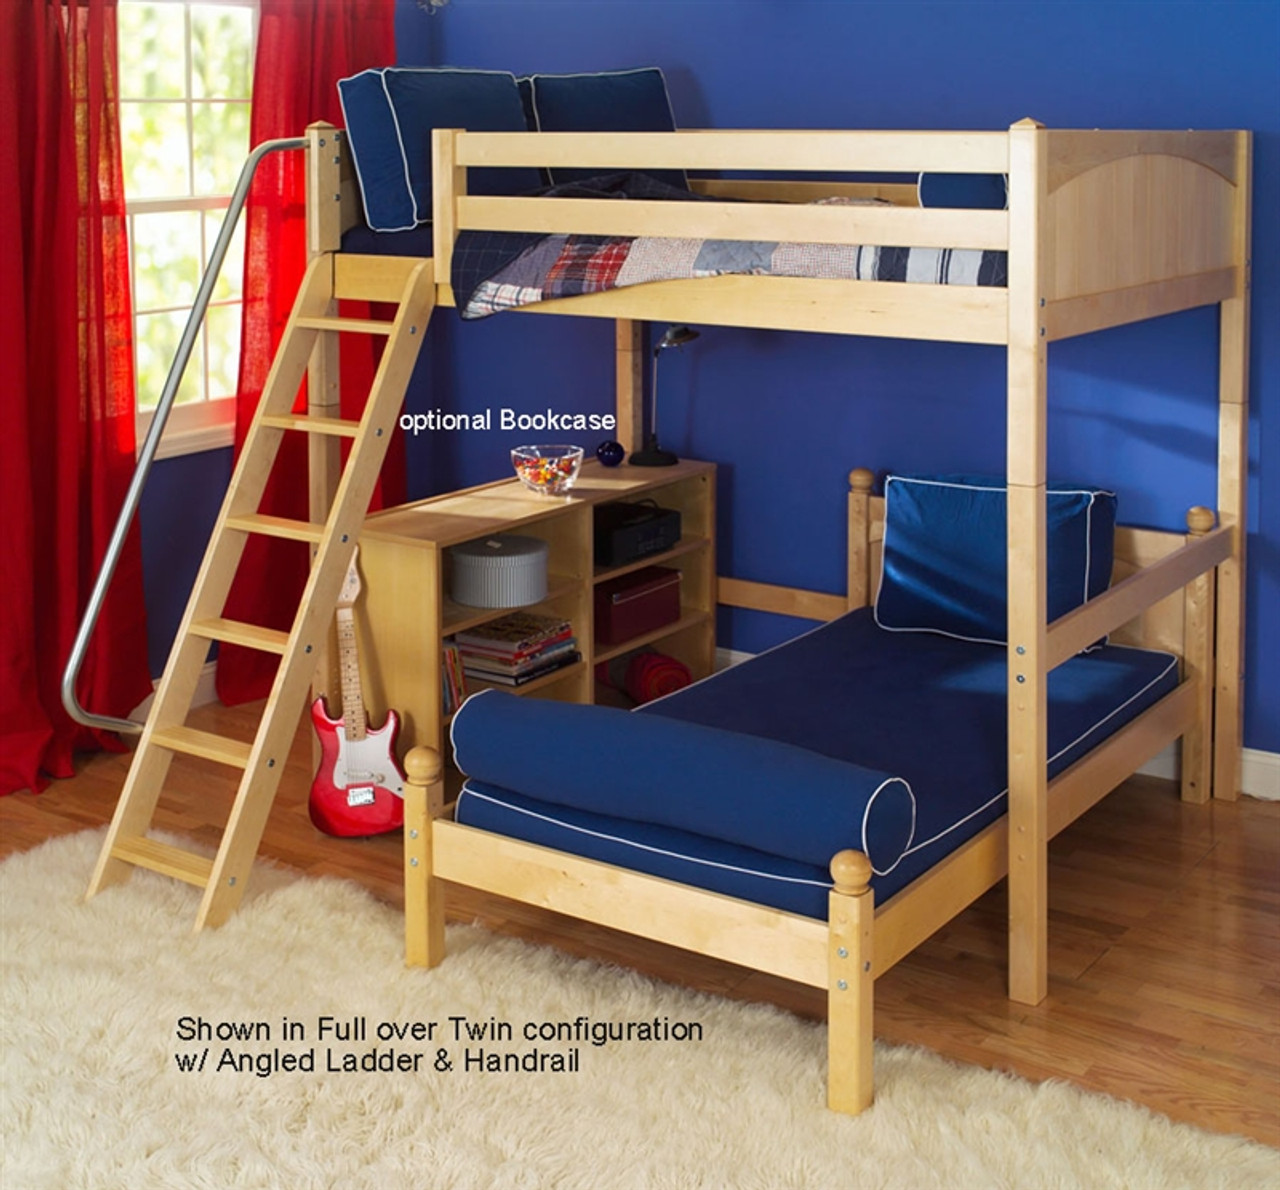 Maxtrix Kids L Shape Loft Bunk Bed Teen Loft Bed In Twin And Full With Lower Bed Maxtrix Childrens Loft Bunk Beds